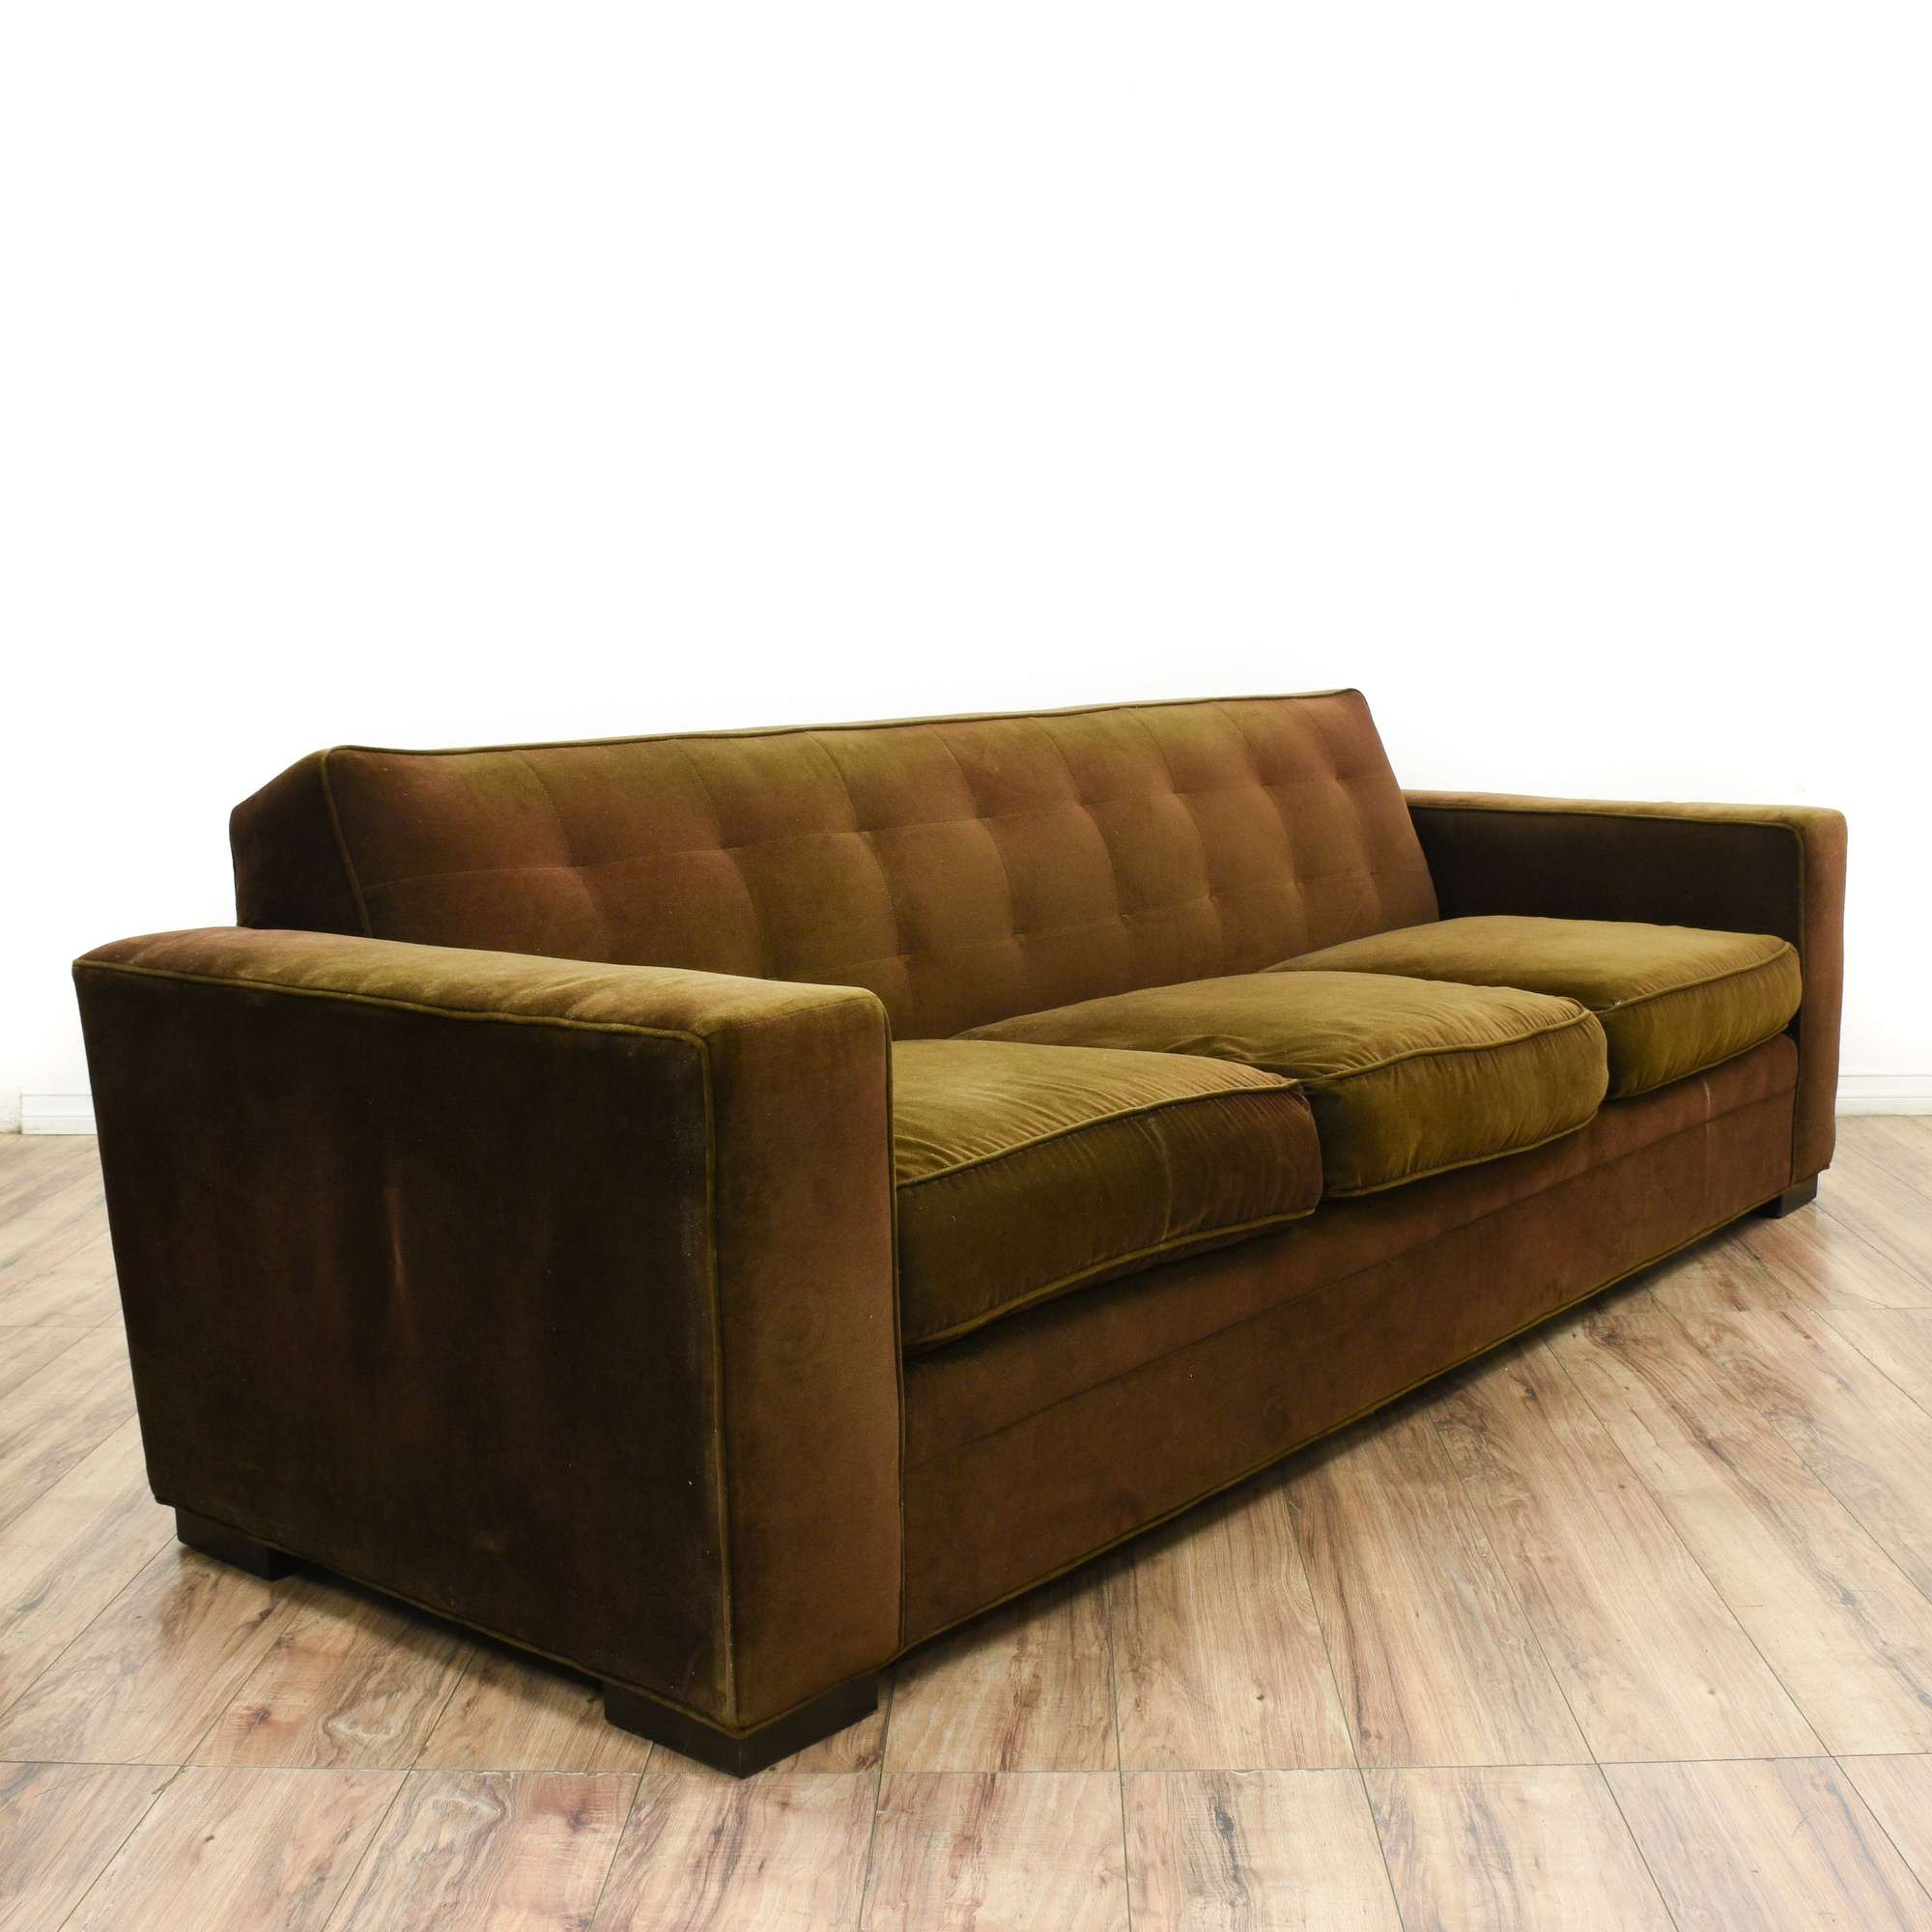 second leather loveseat and bobs com cushion brown s sofa furniture three hand bob off